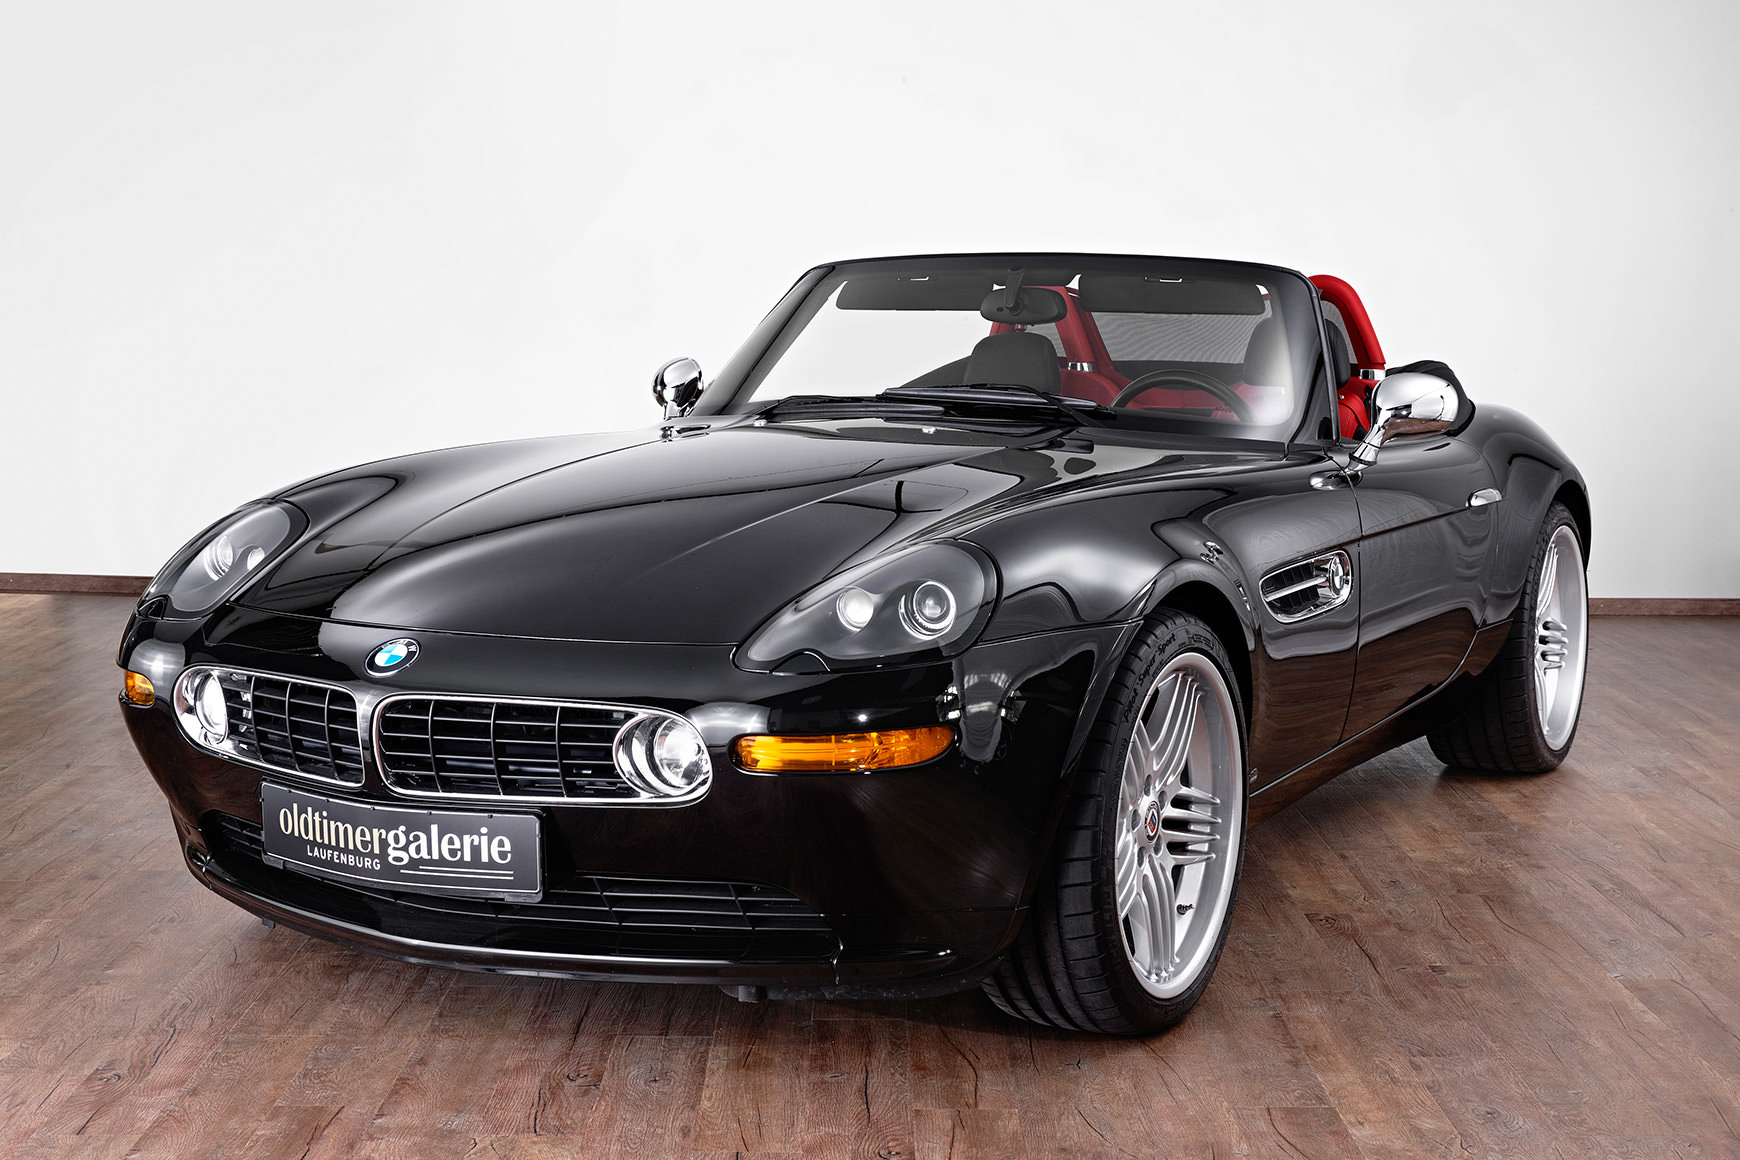 bmw z8 e52 cars news videos images websites lookingthis com. Black Bedroom Furniture Sets. Home Design Ideas